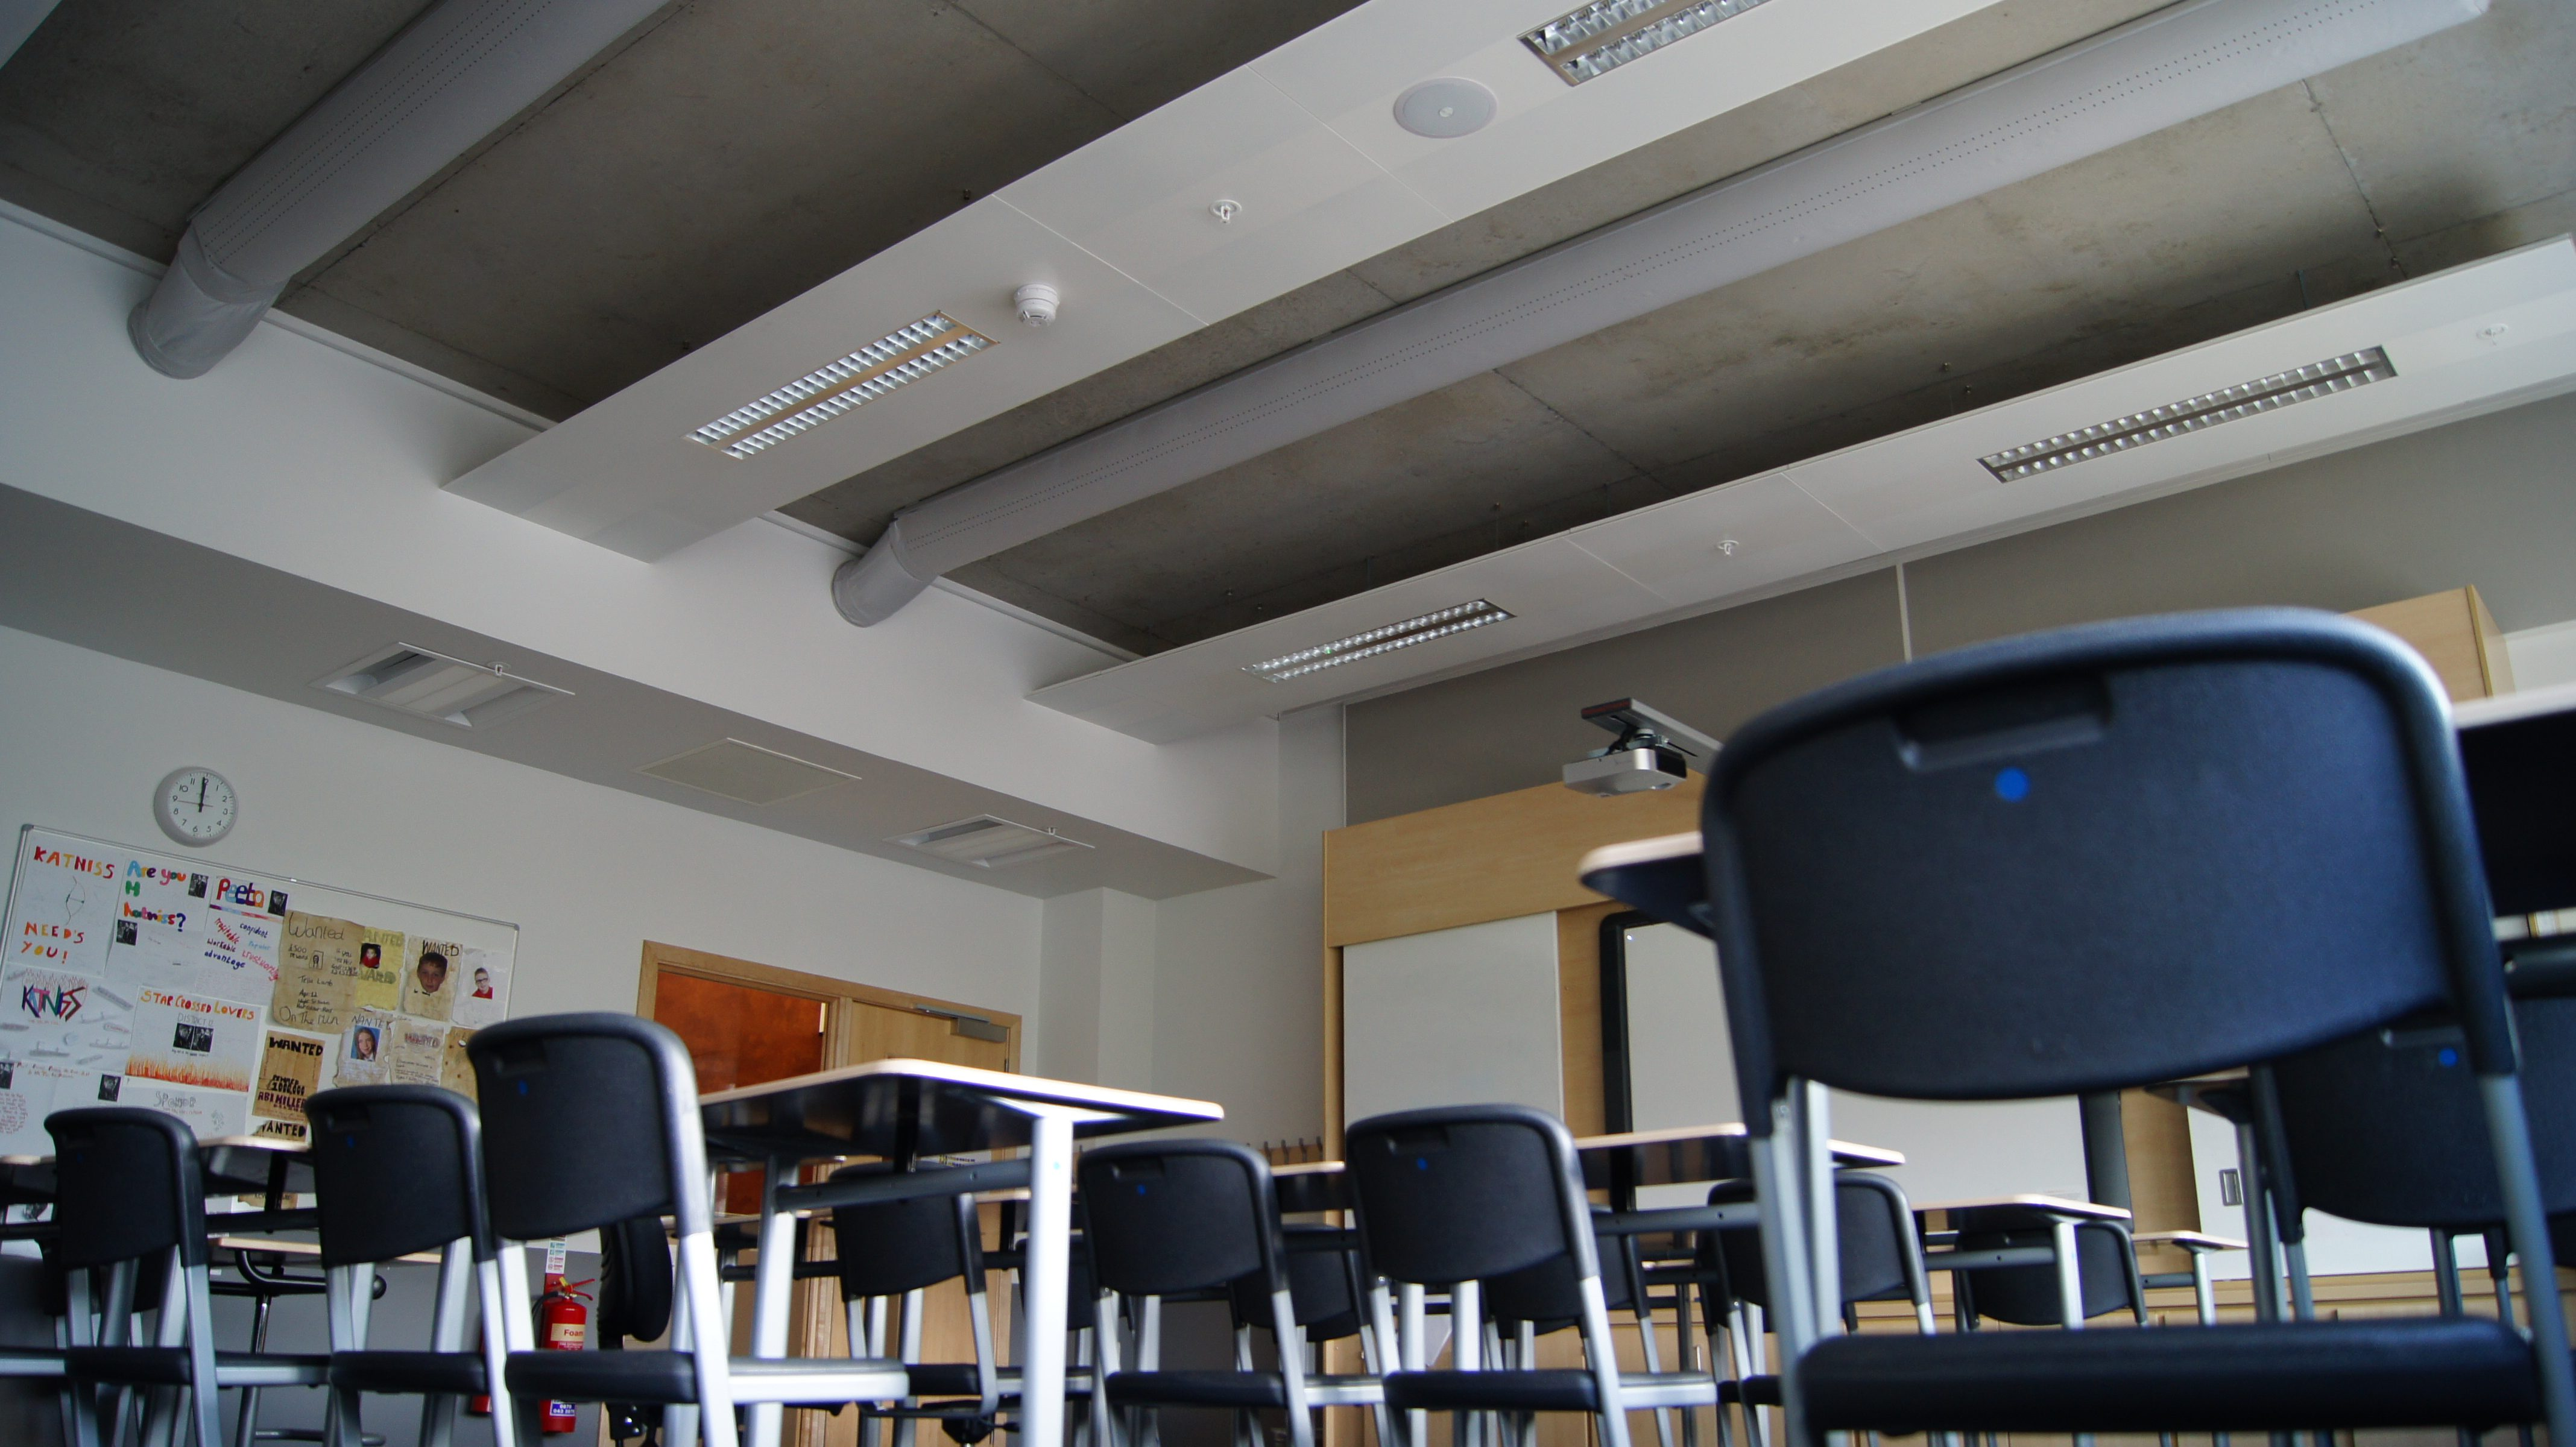 view of classroom ceiling mounted air sock ventilation